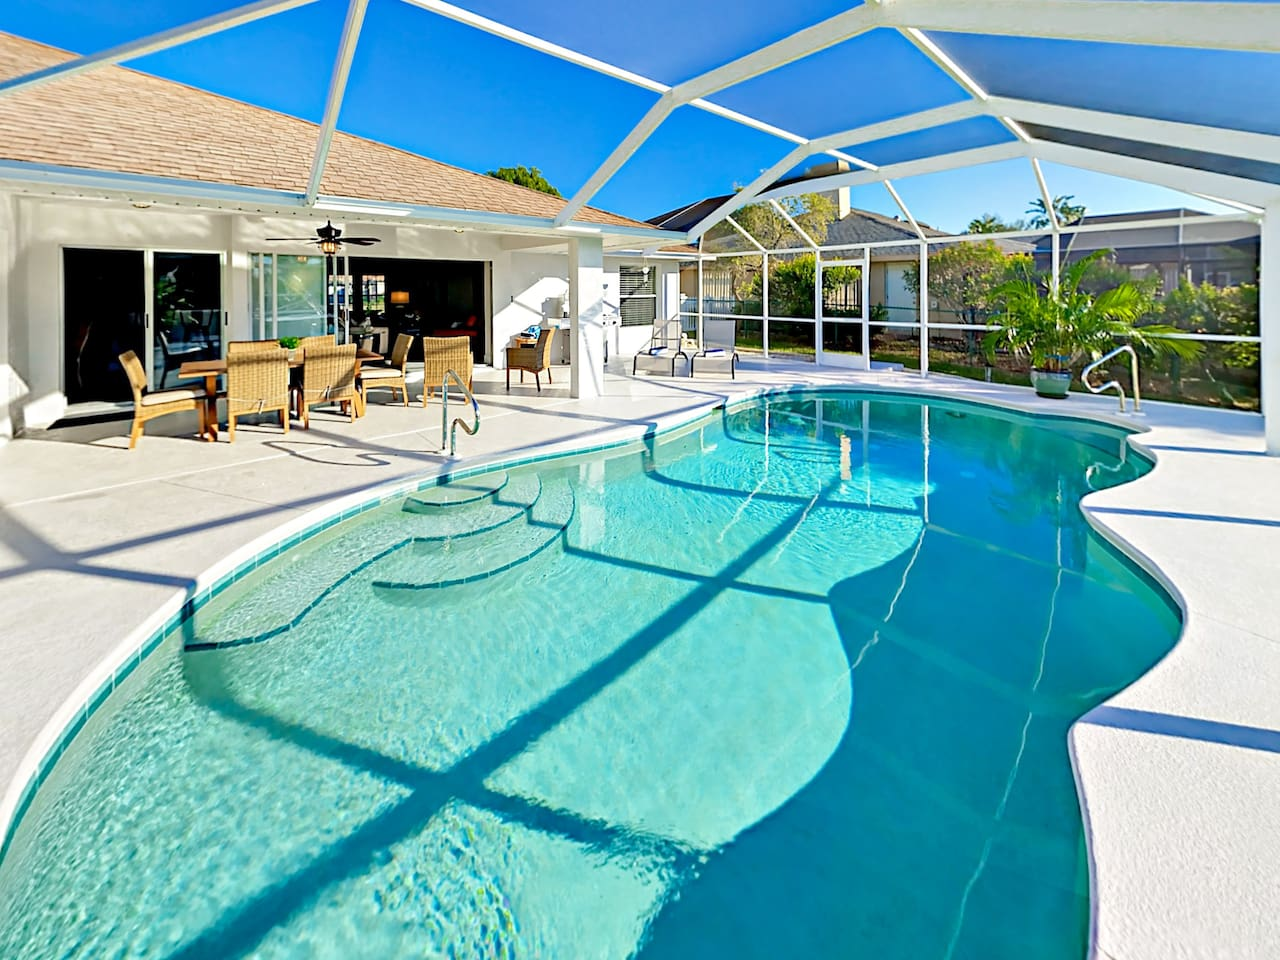 Welcome to Cape Coral! Your rental is professionally managed by TurnKey Vacation Rentals.